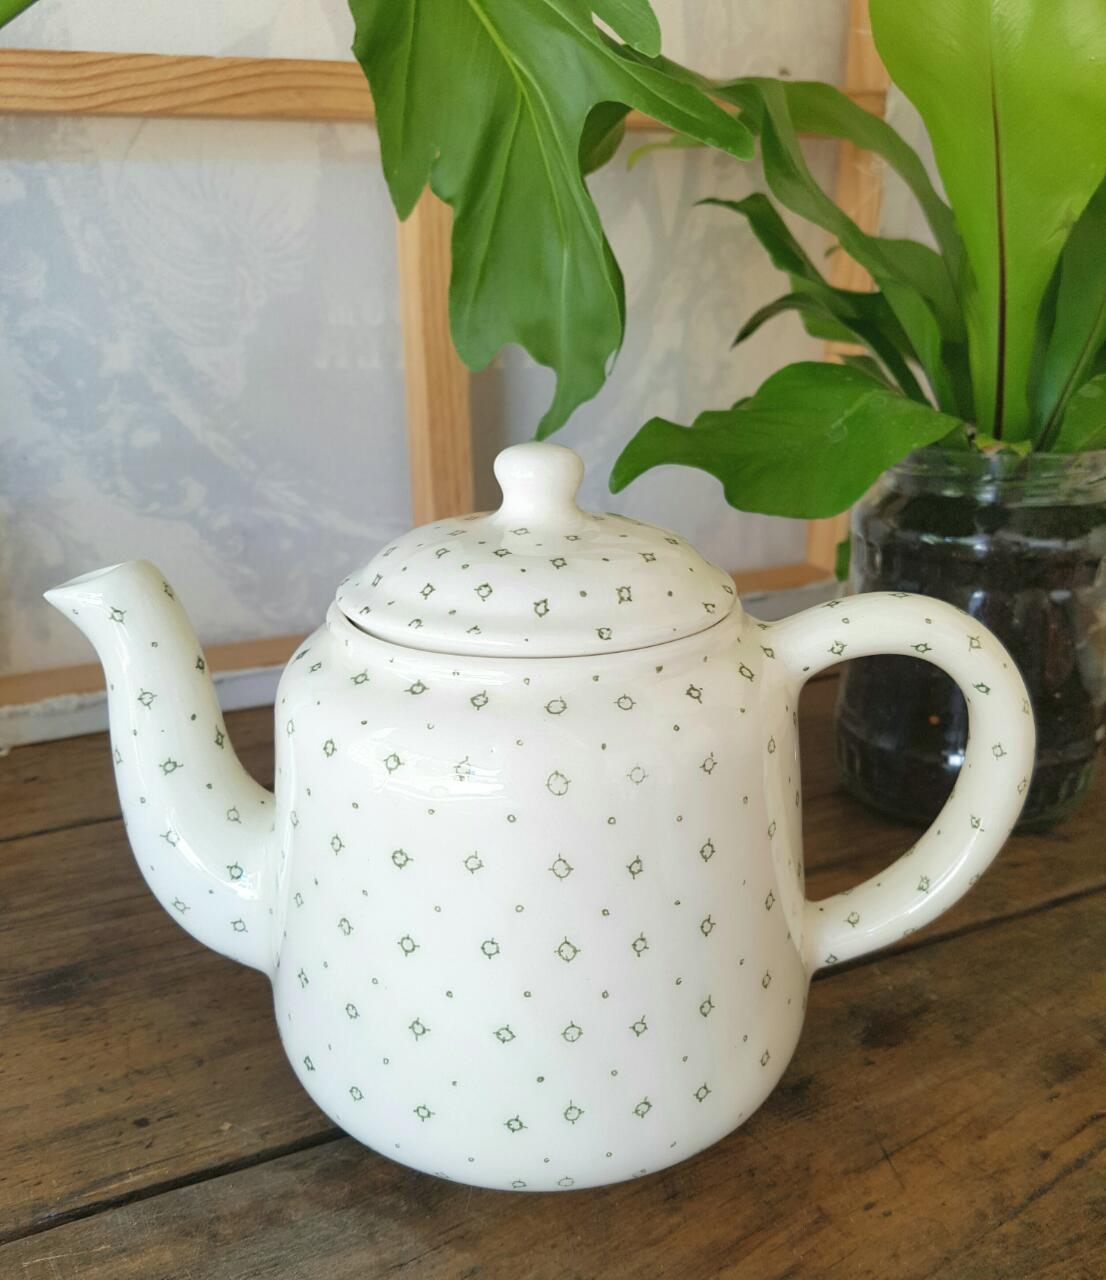 Available in grey, dusty pink, green, white, green compass circle pattern and cactus pattern.  Makes 4 cups of tea.